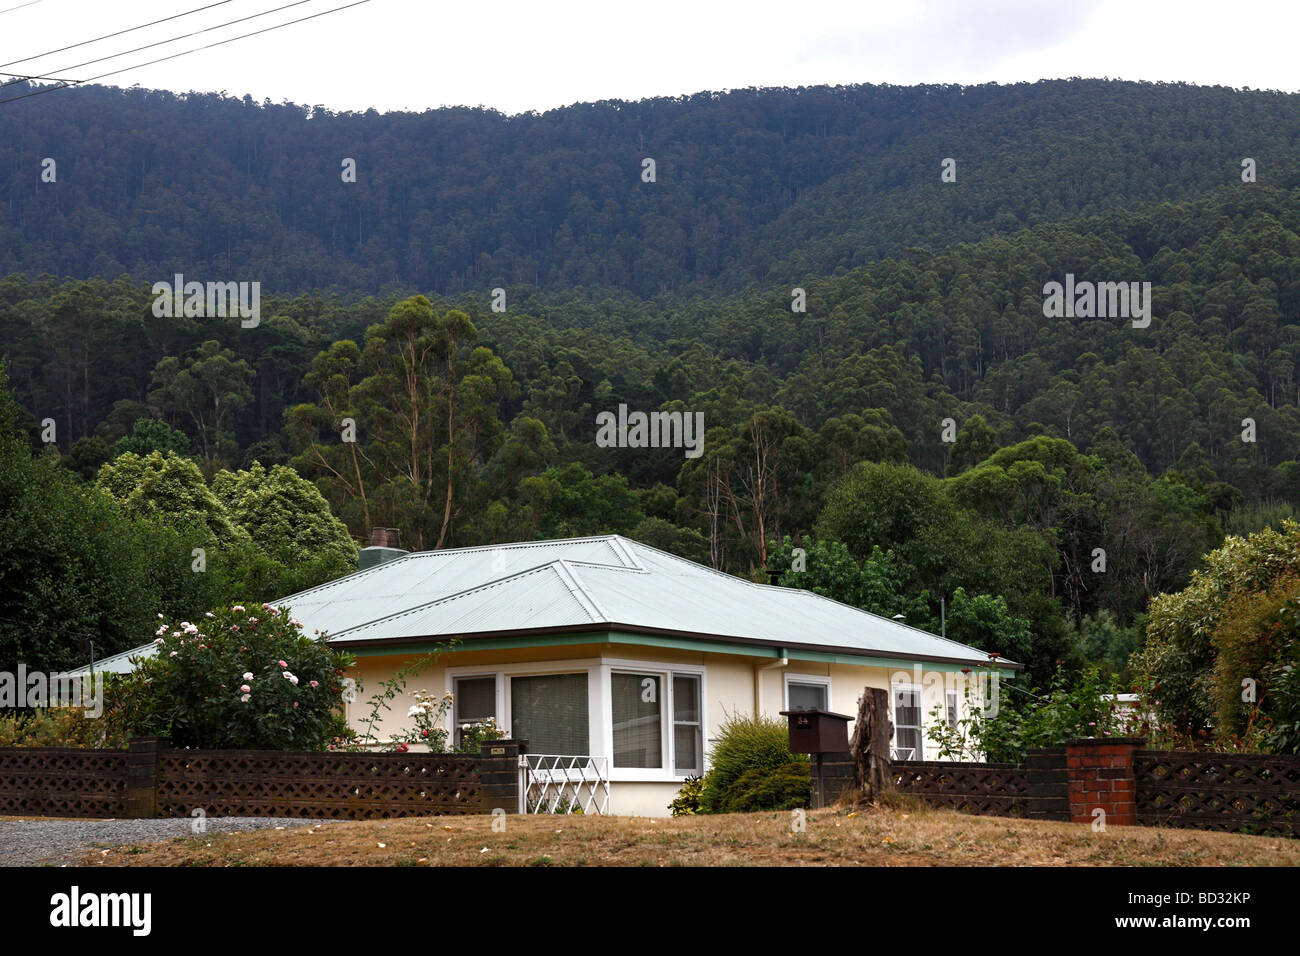 Australian country home built into bushland - Stock Image